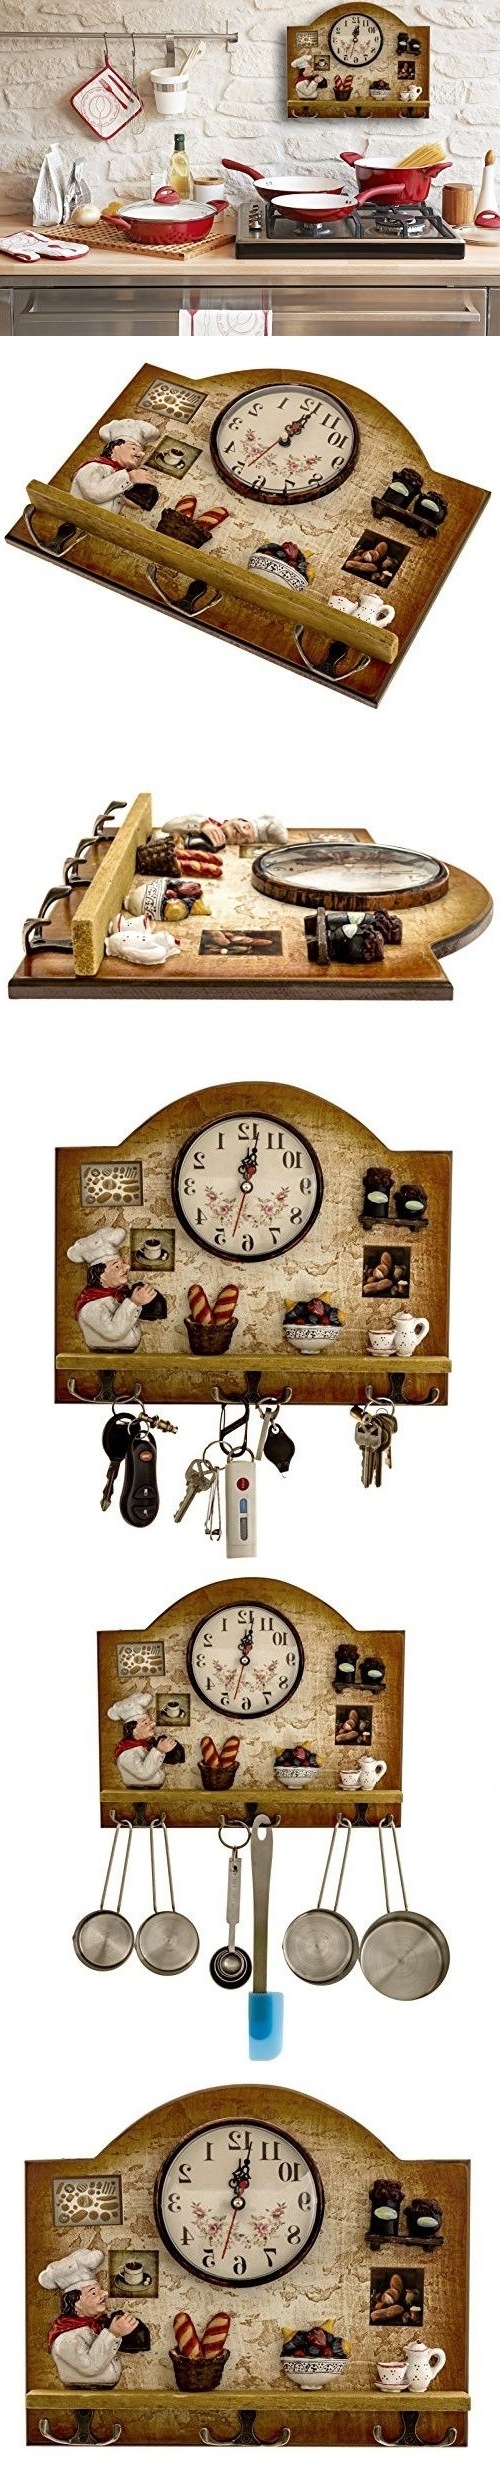 Most Current Italian Ceramic Wall Clock Decors With Regard To Heartful Home Fat Italian Chef Kitchen Decor Clock With Hooks (View 4 of 15)